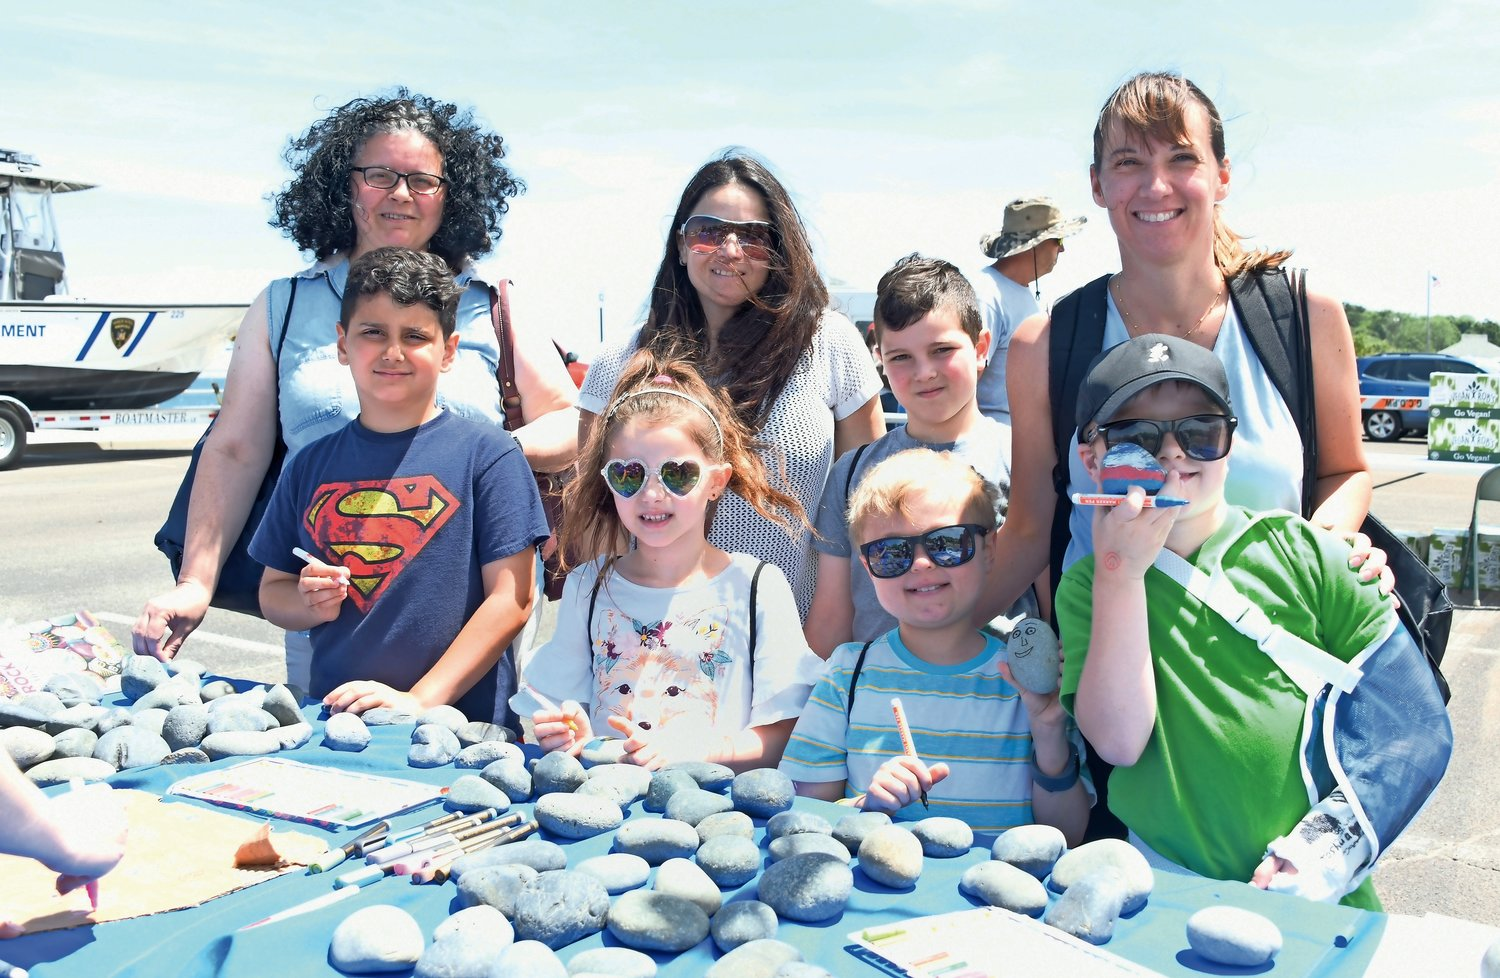 Rock decoration, courtesy of the Glen Cove Youth Bureau, was a big hit at Kids Play Day.